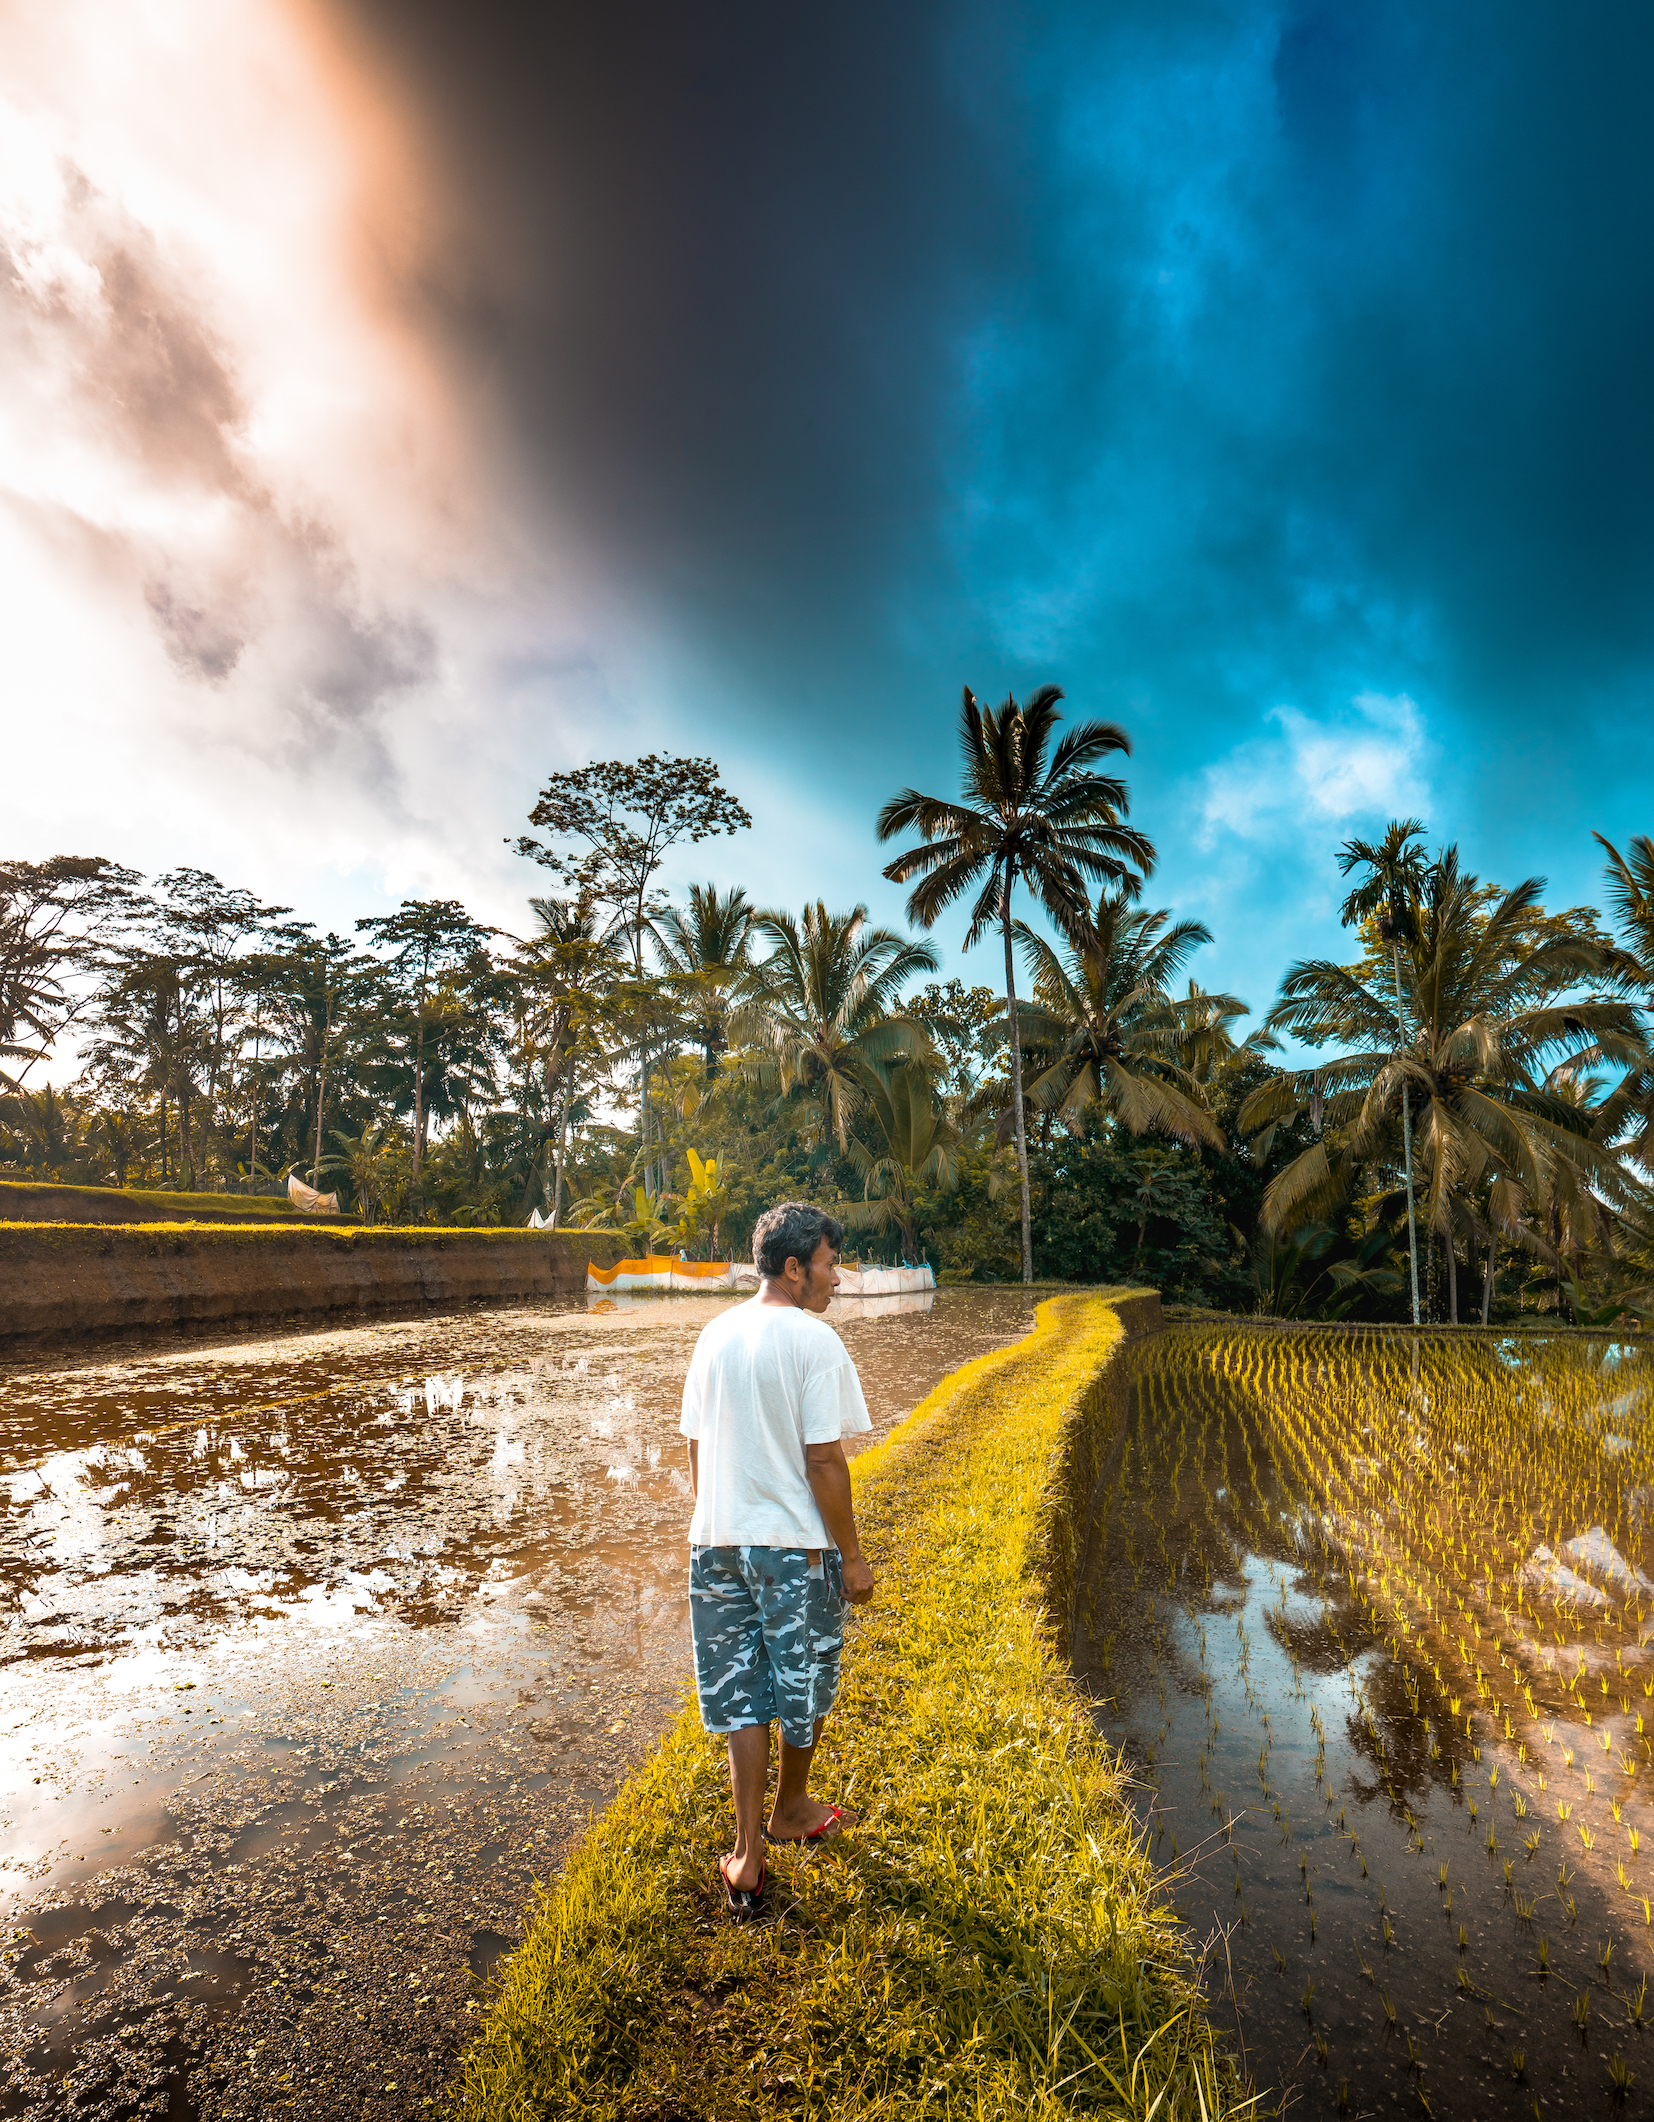 Rice Terrace with private guide - insta 2.jpg